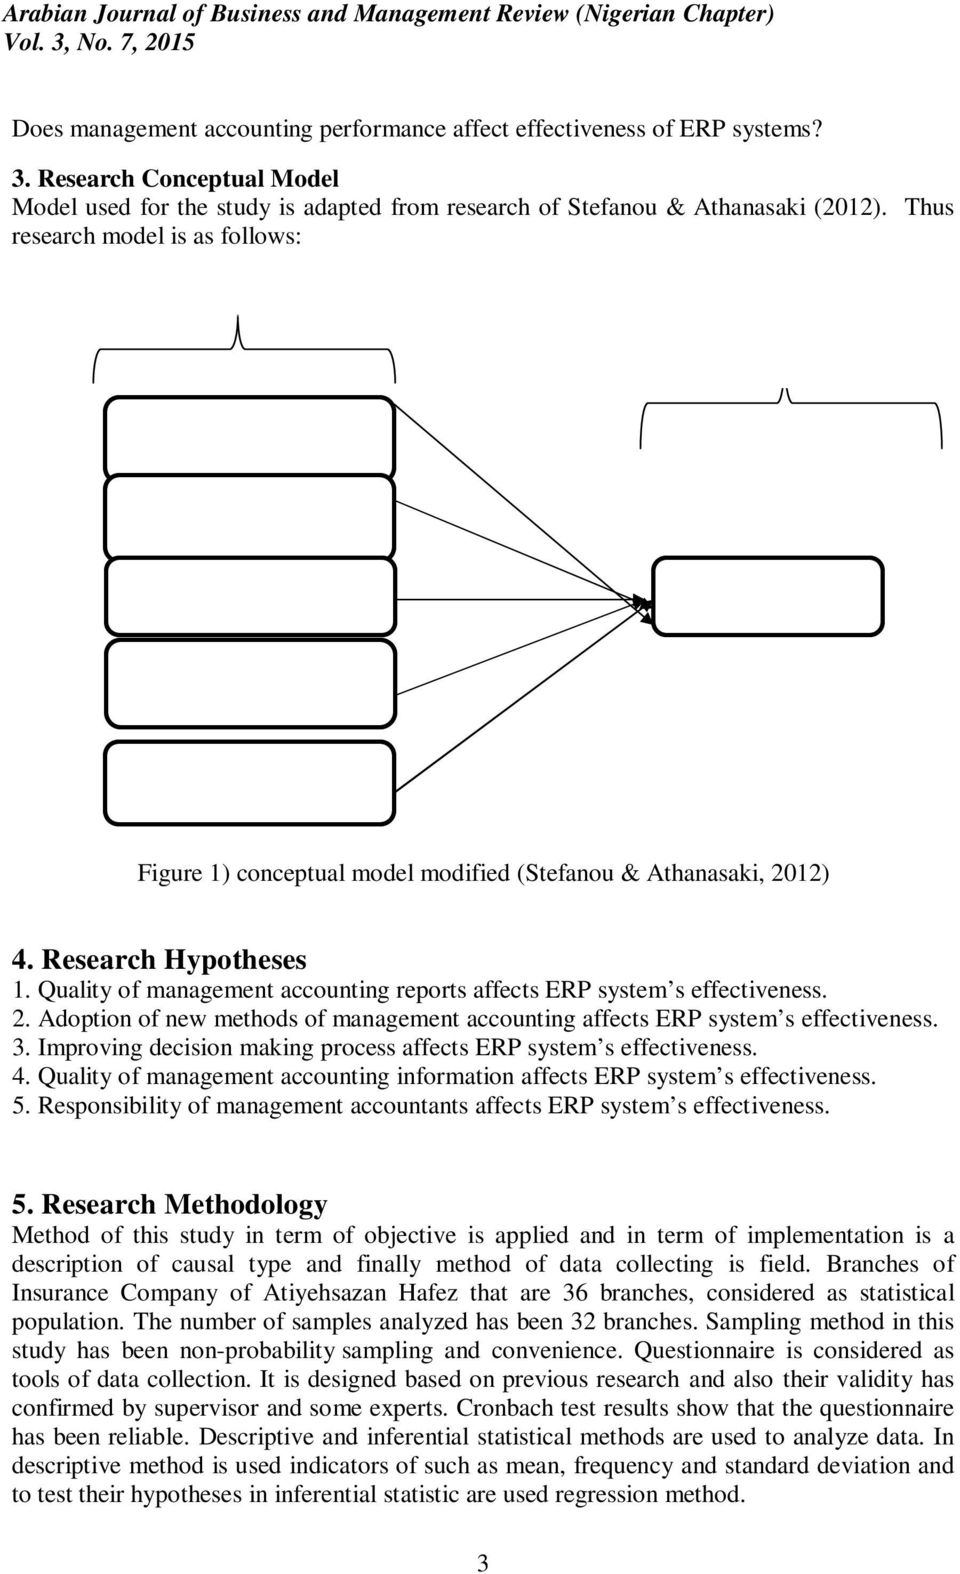 System s Effectiveness Quality of management accounting information Responsibility of Management Accountants Figure 1) conceptual model modified (Stefanou & Athanasaki, 2012) 4. Research Hypotheses 1.